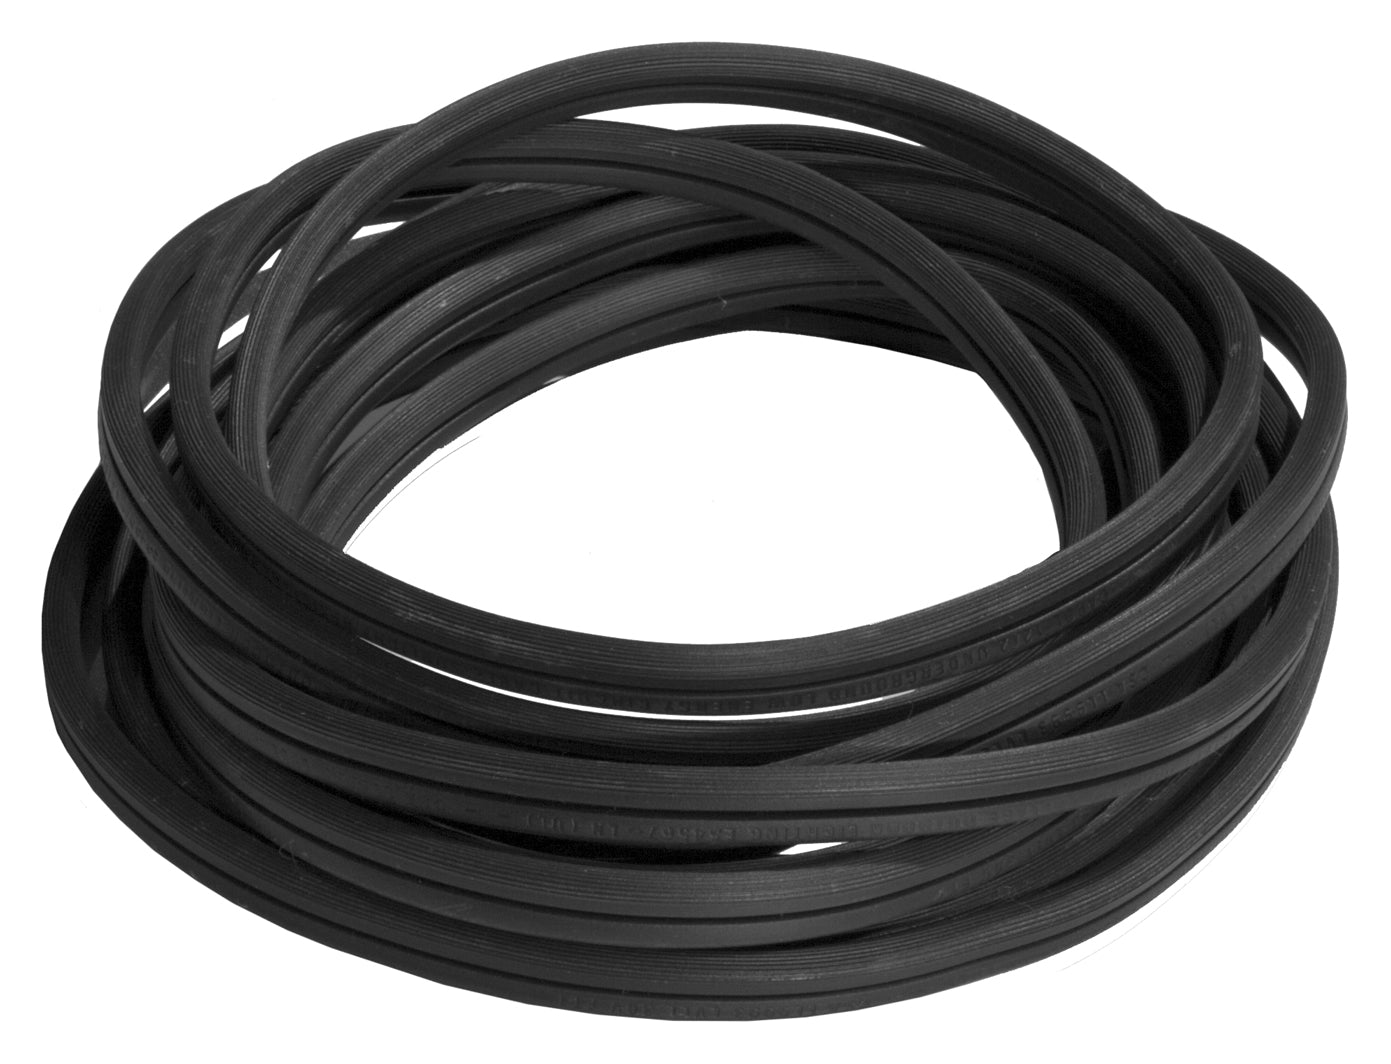 HighPoint 18/2 Low Voltage Outdoor Wire, 18 AWG, 2-Wire – Quality ...